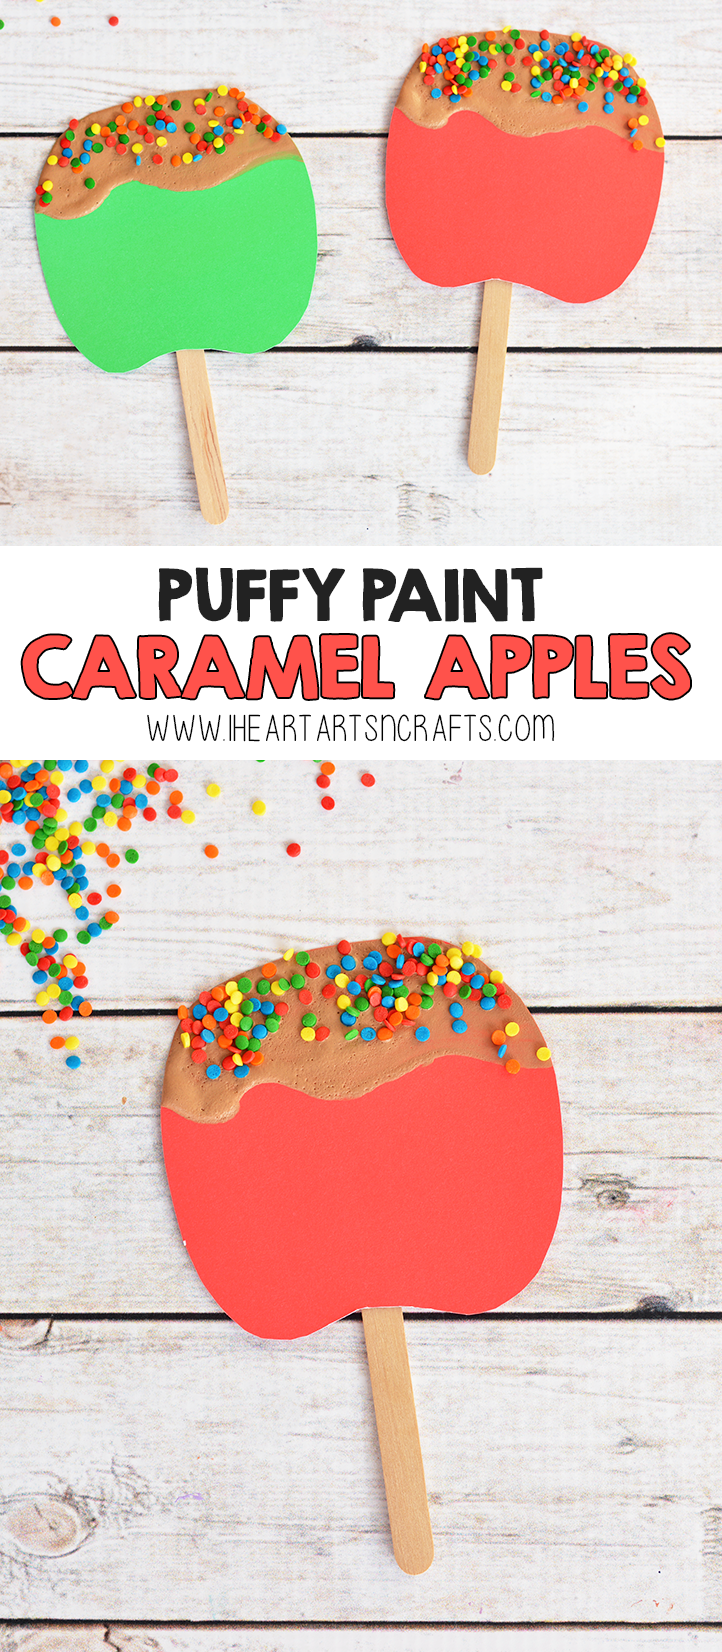 Puffy Paint Caramel Apple Craft For Kids